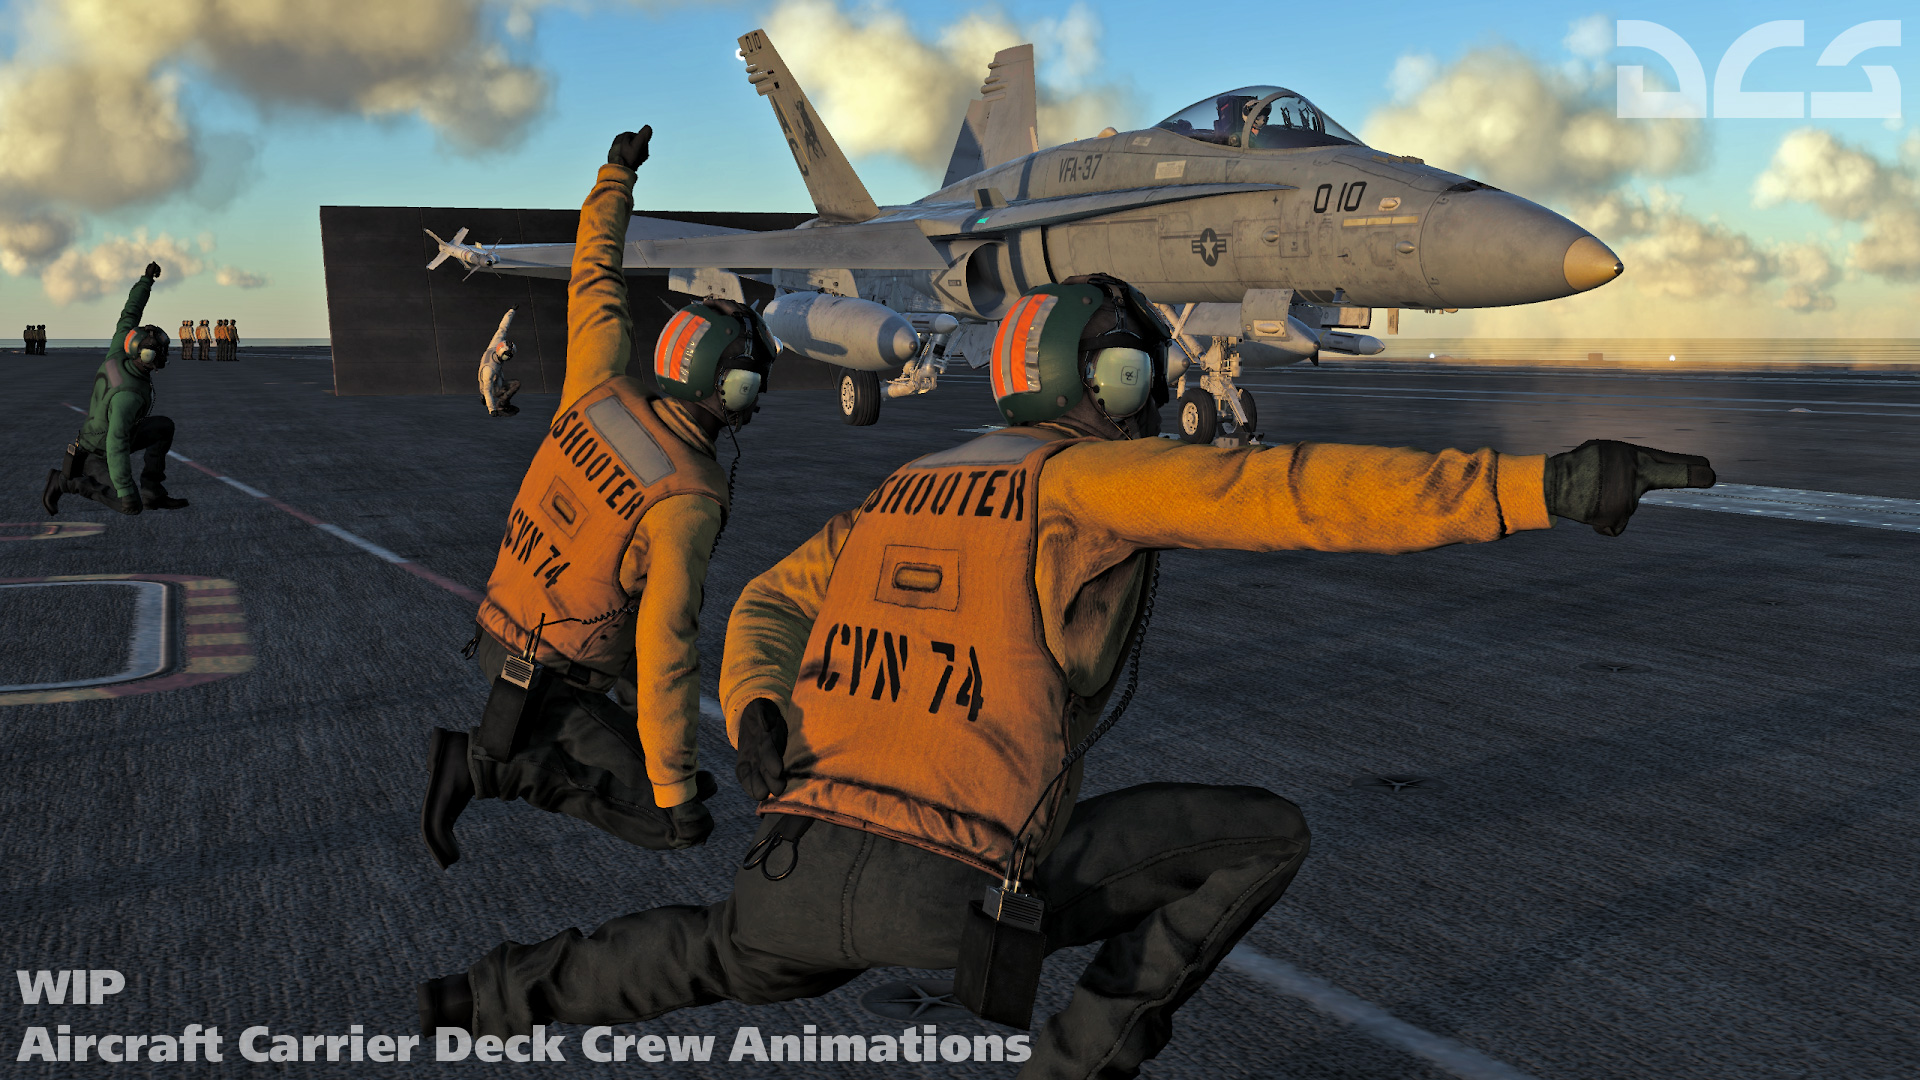 https://www.digitalcombatsimulator.com/upload/iblock/0eb/Aircraft-Carrier-Deck-Crew-Animations-01.jpg